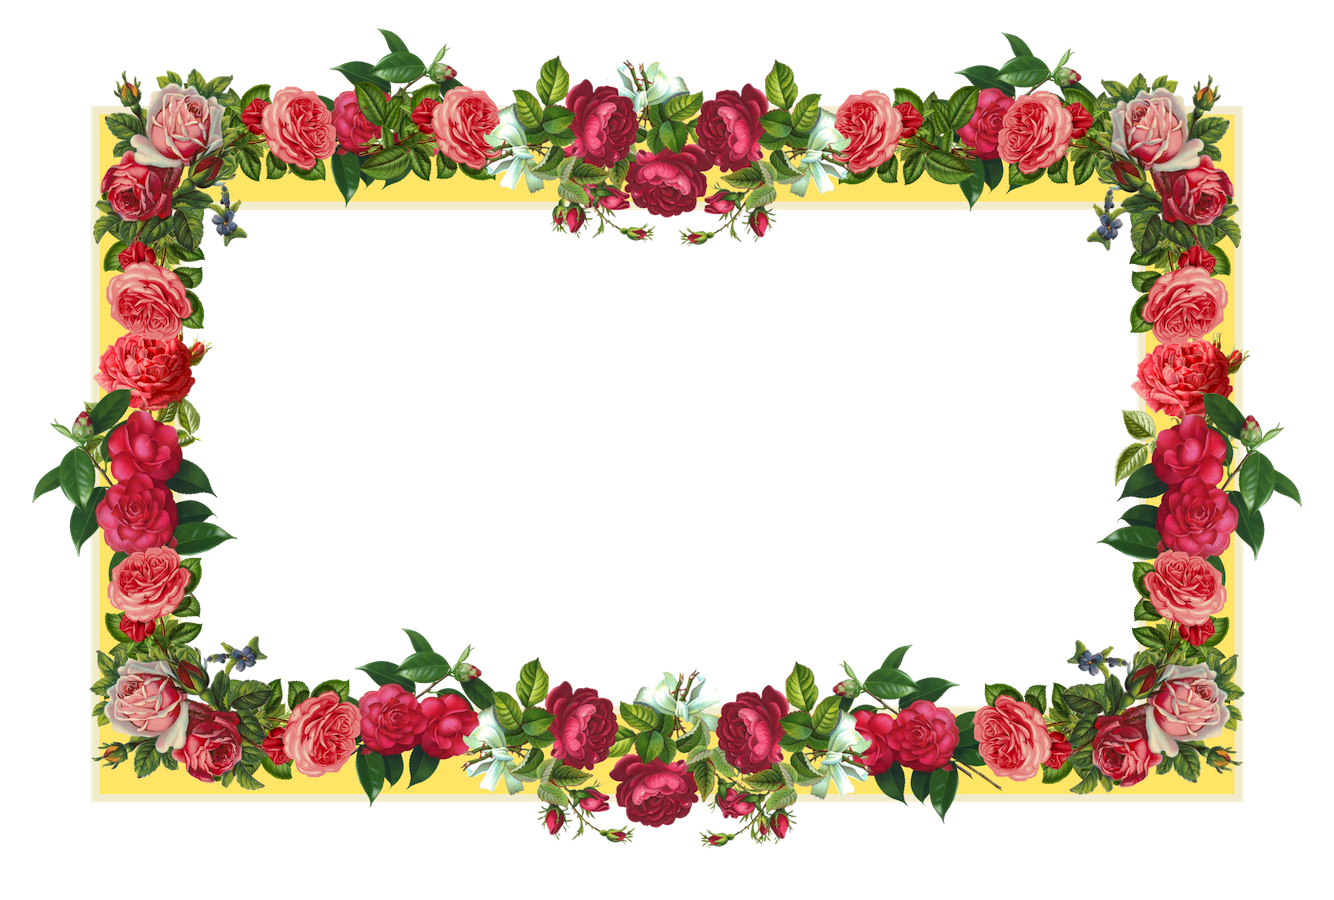 10 2 Flowers Borders Png Images